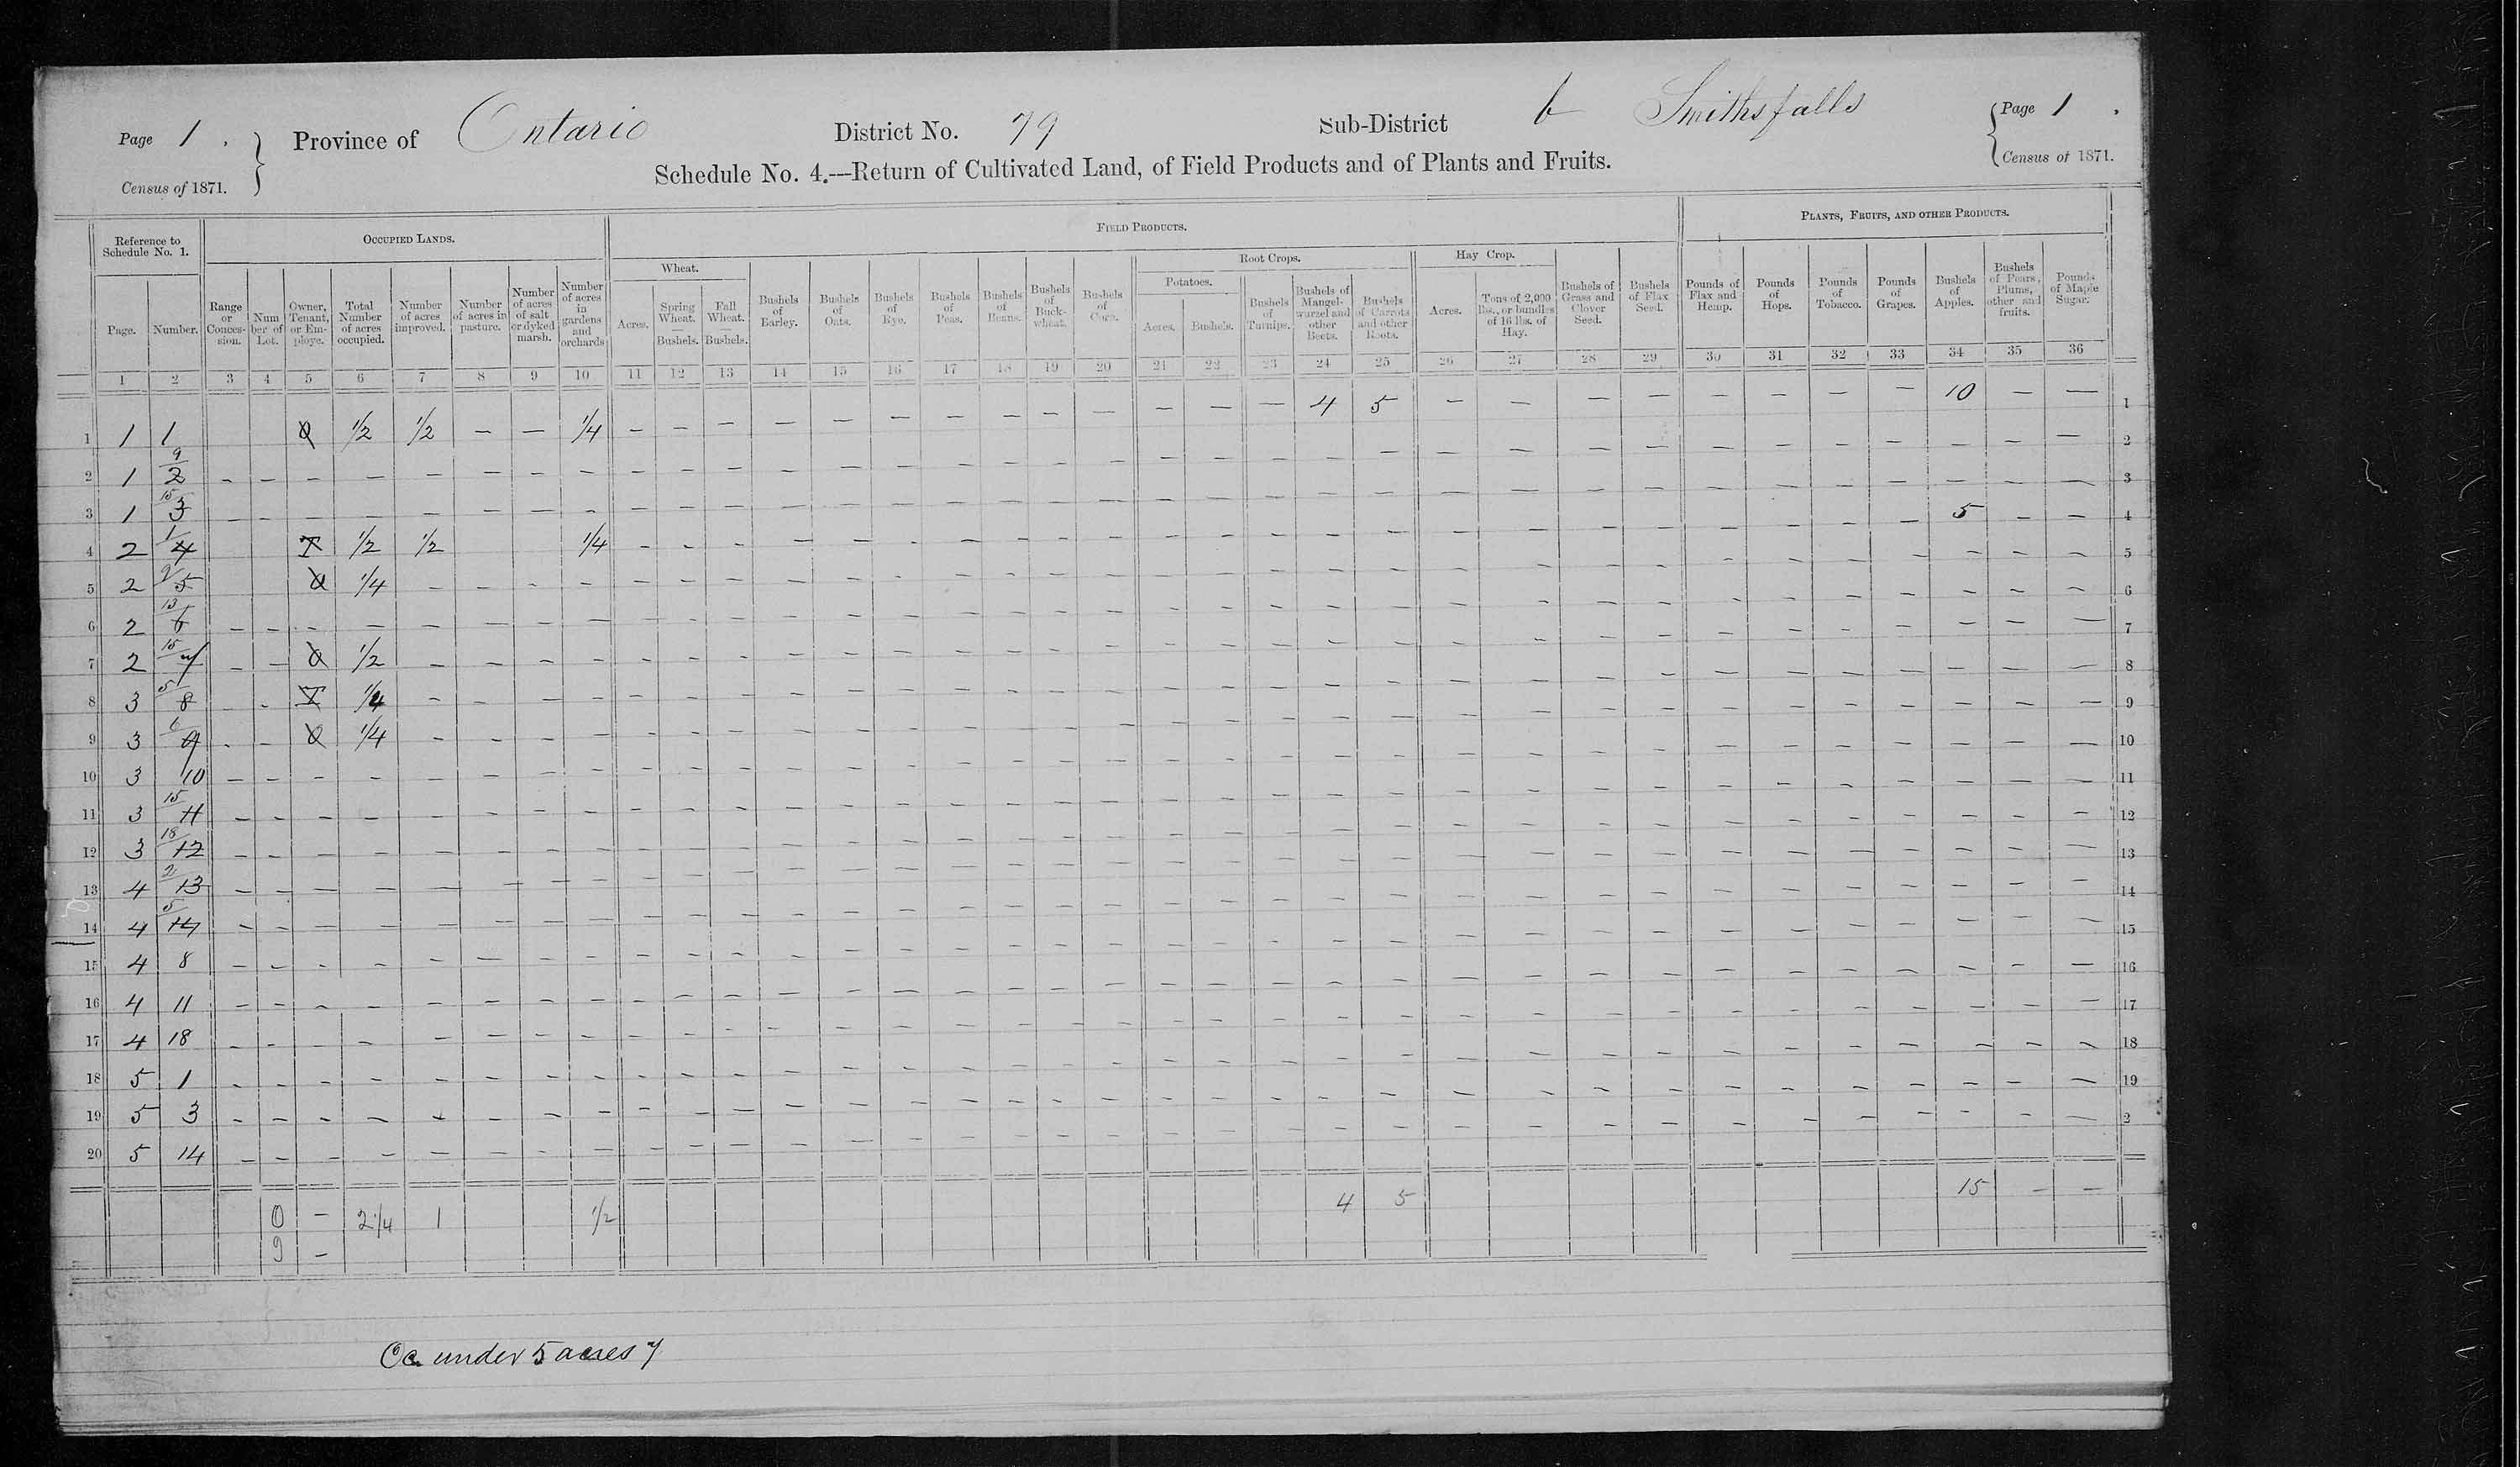 Title: Census of Canada, 1871 - Mikan Number: 142105 - Microform: c-10017